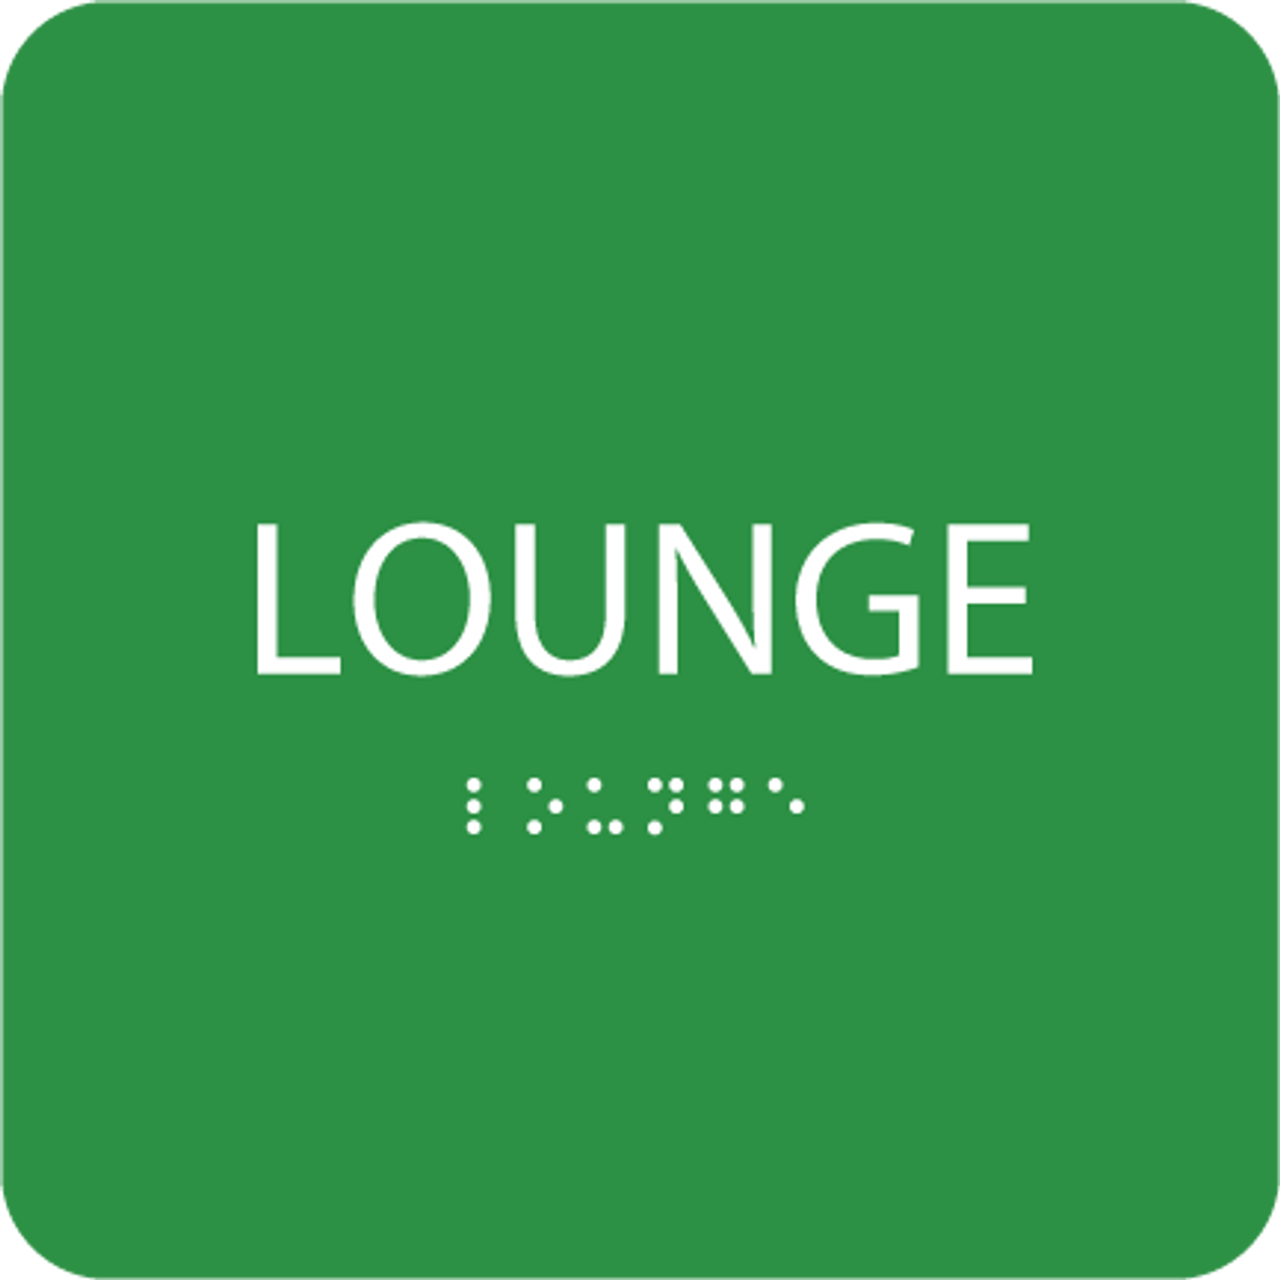 Green Lounge ADA Sign